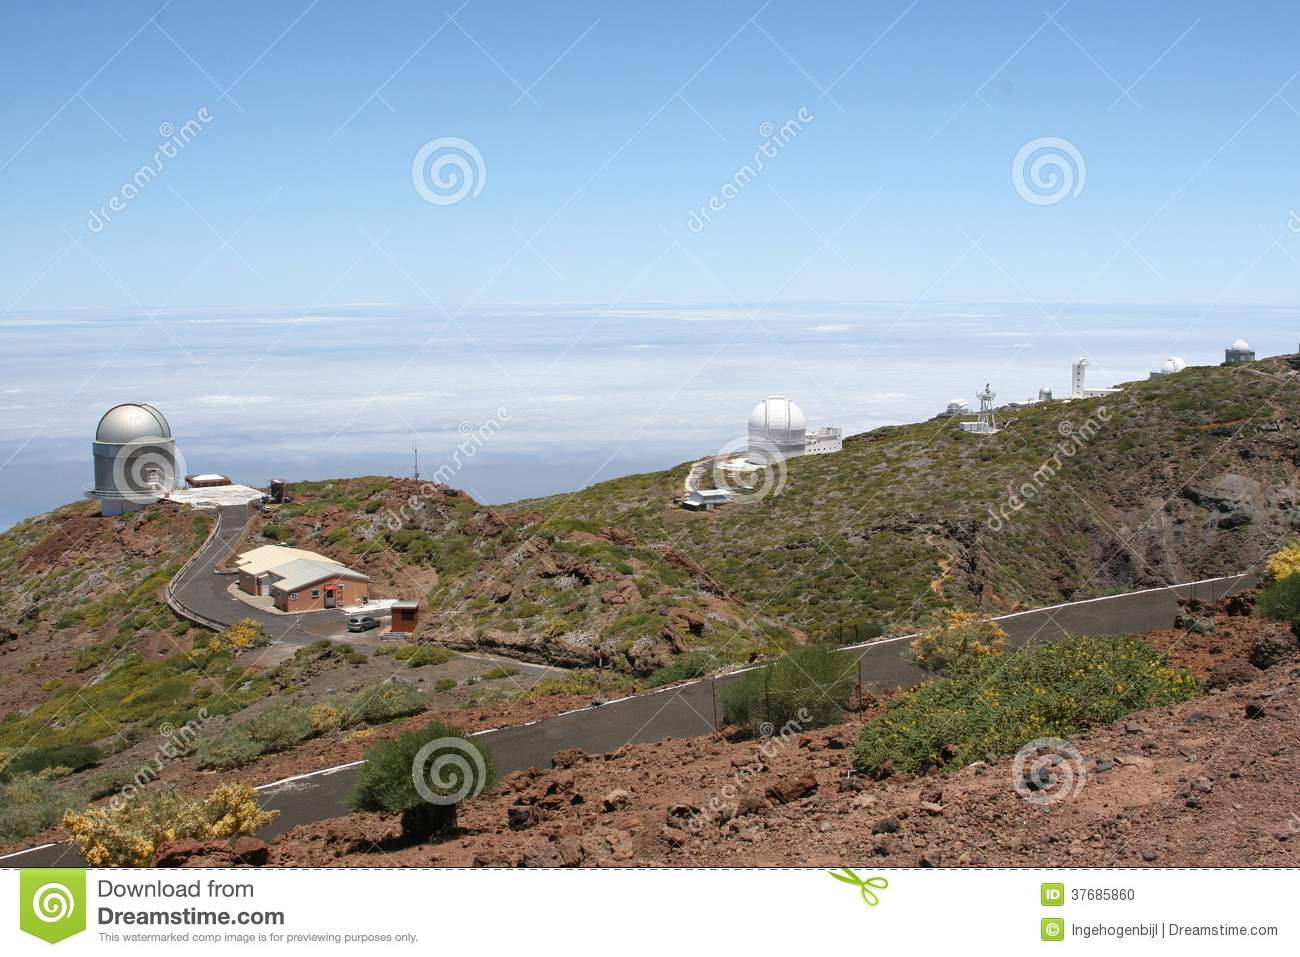 Observatories for observing the stars and planets, La Palma, Spain